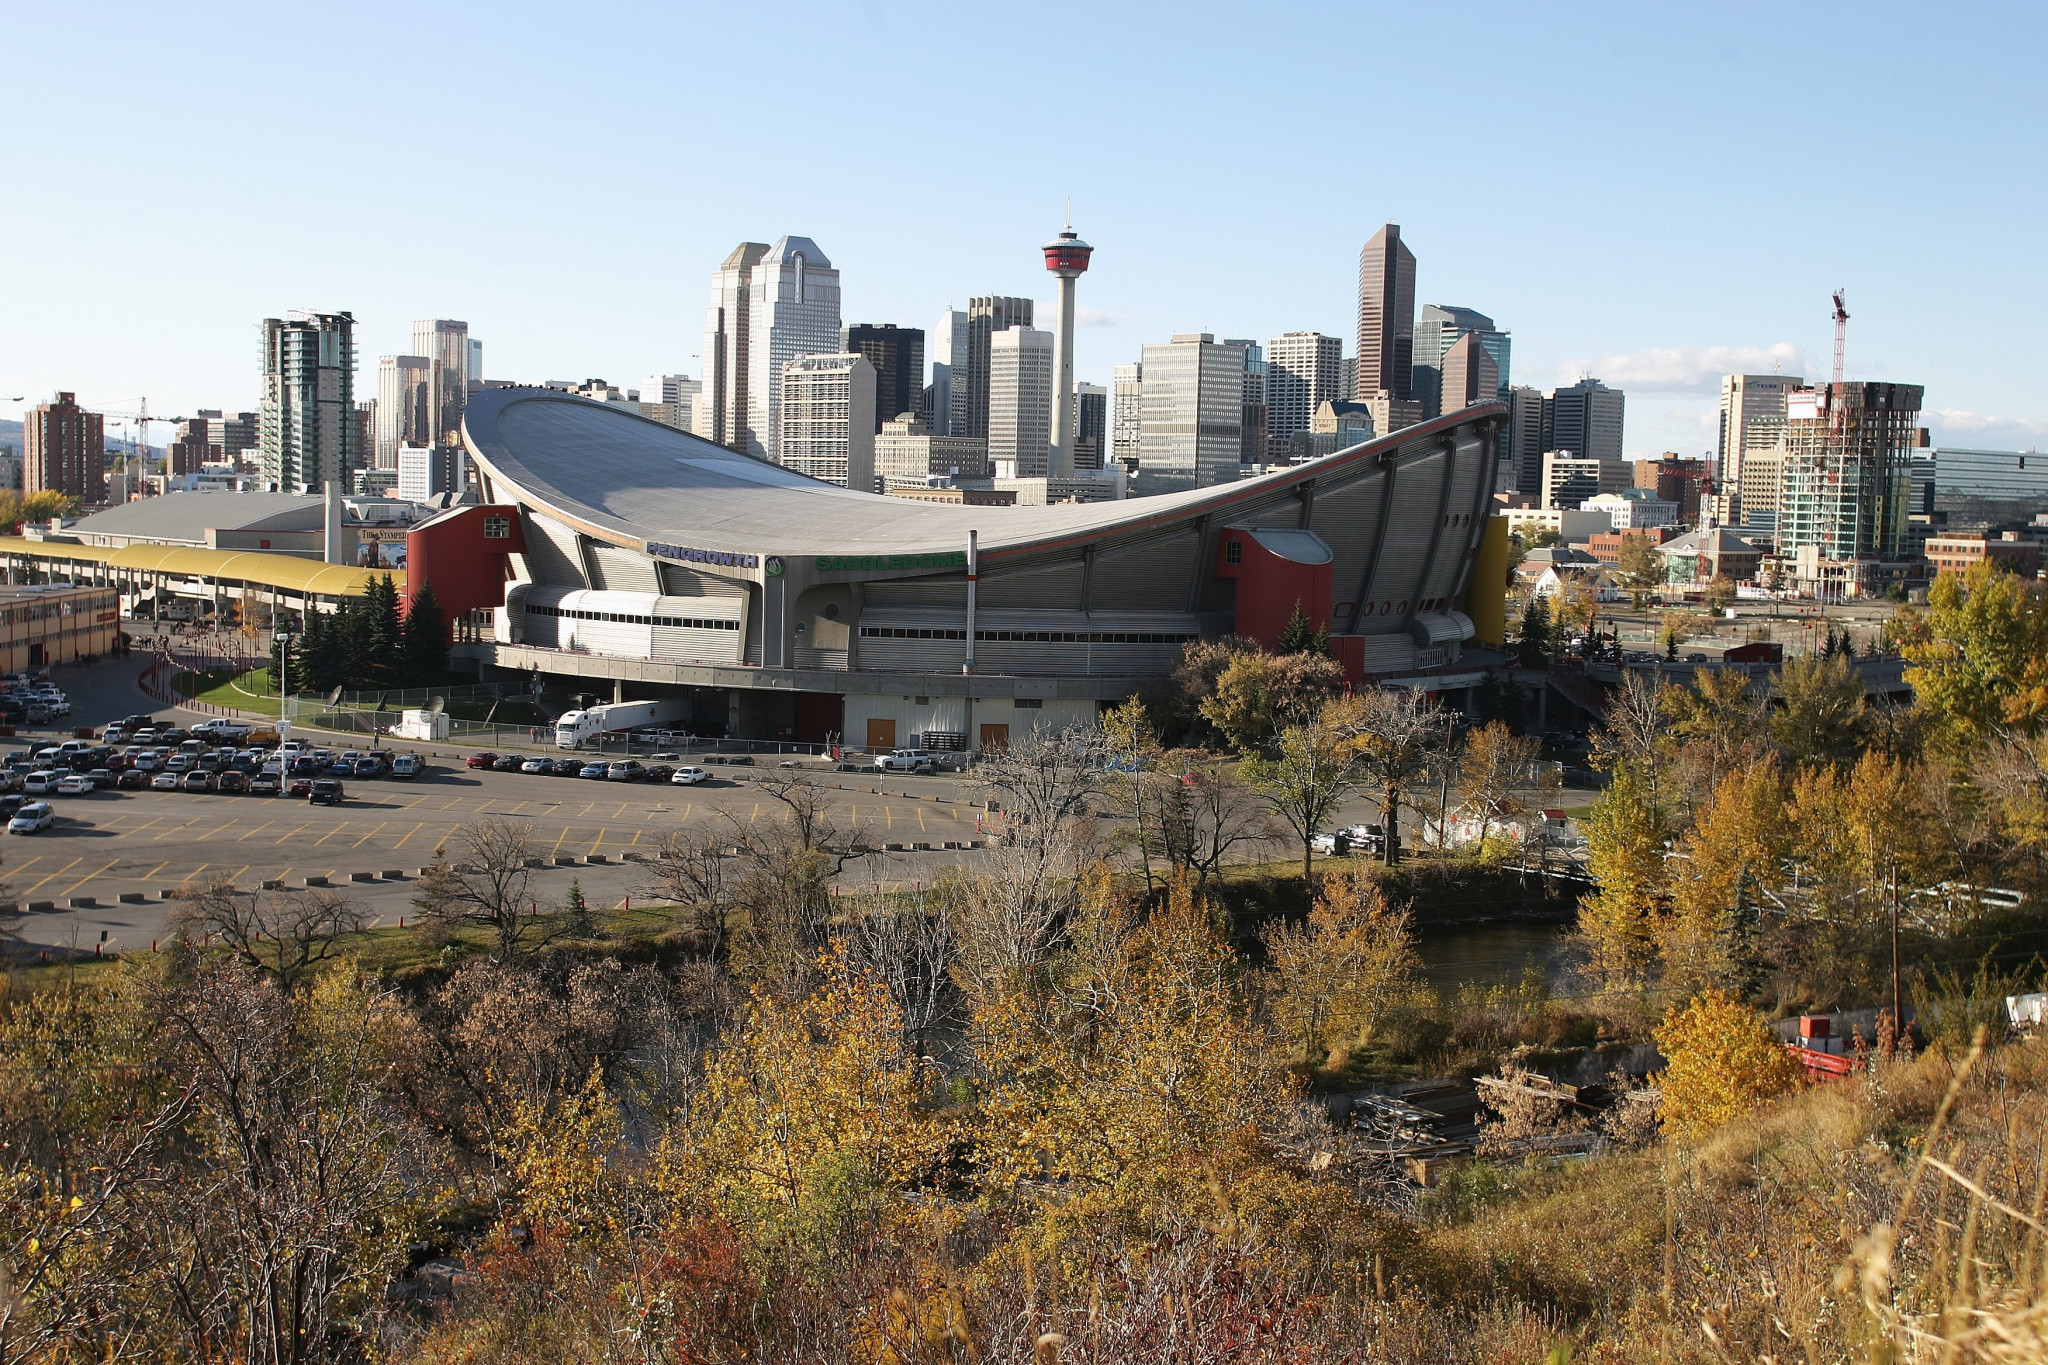 Existing infrastructure and expertise in running events was claimed to reduce risks around Calgary hosting the Olympic and Paralympic Games in 2026 - although not all the audience were convinced ©Getty Images